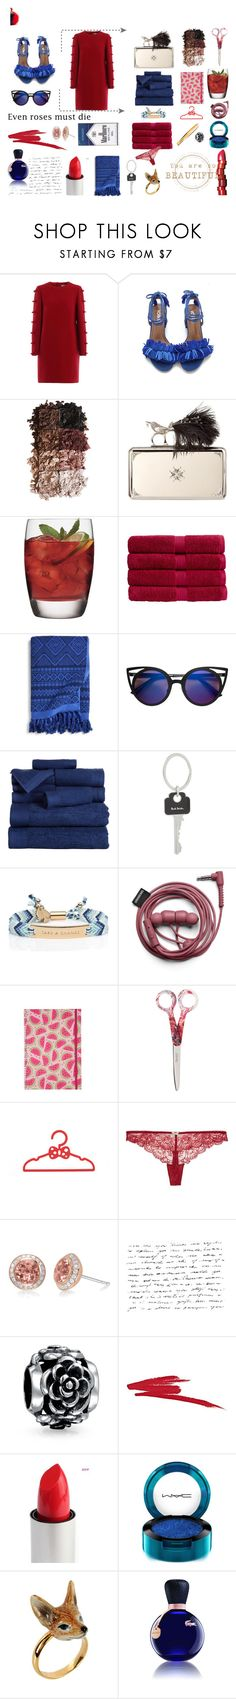 """RED"" by denisse-ponce ❤ liked on Polyvore featuring LORAC, Alexander McQueen, Luigi Bormioli, NARS Cosmetics, Christy, Vera Bradley, Paul Smith, Kate Spade, Heidi Klum Intimates and Frederic Sage"